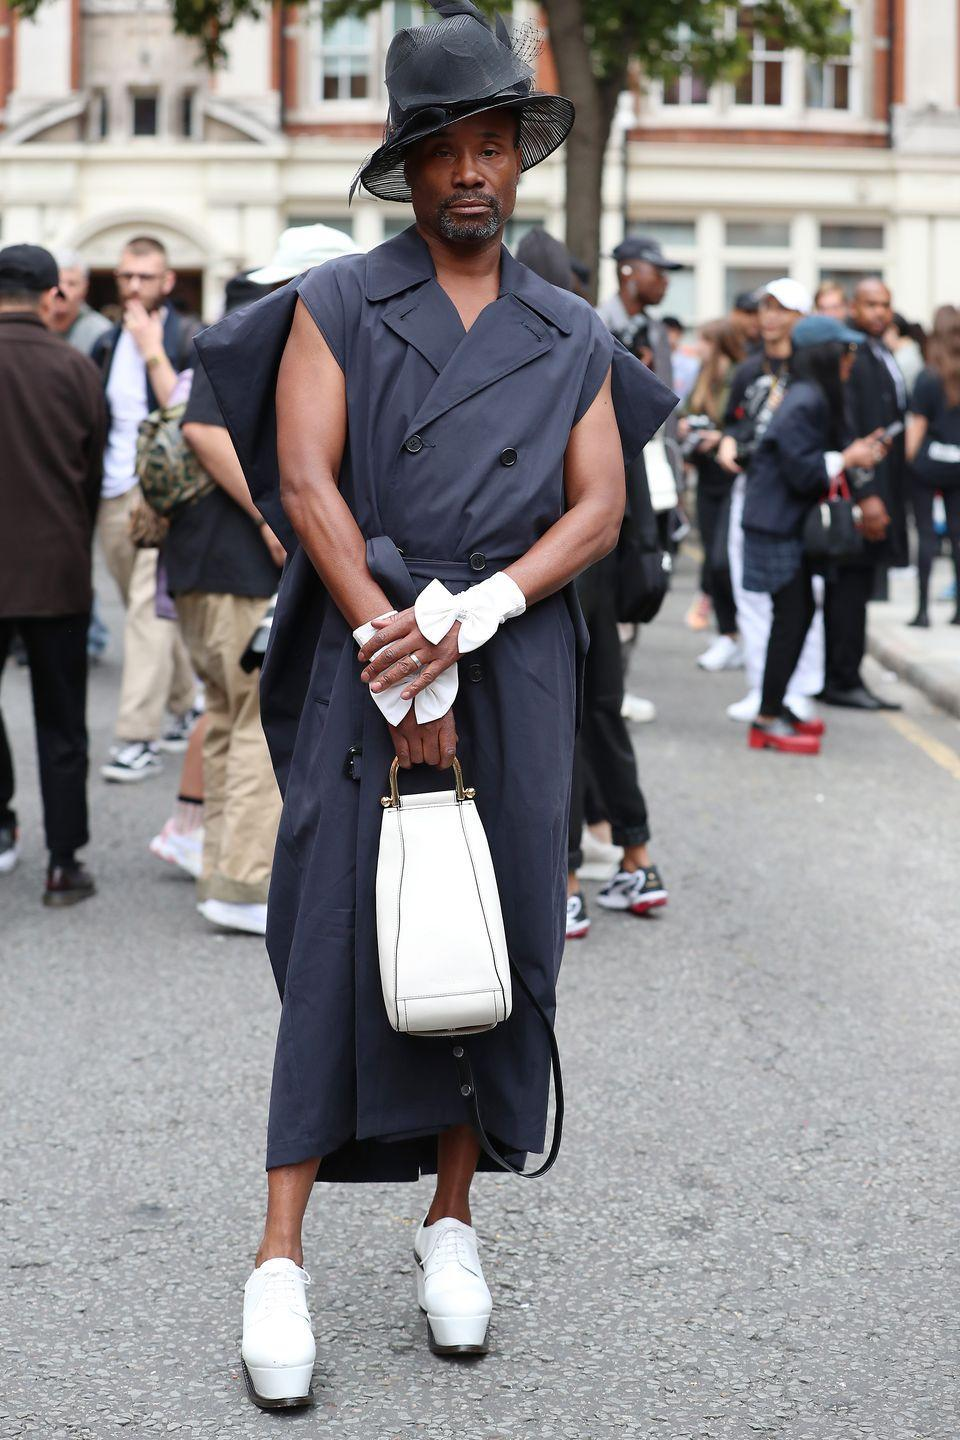 <p>The actor attended fashion week on the fourth day wearing a coat designed by JW Anderson, a black hat by Stephen Jones Millinery, gloves by Wing Weft Gloves and carried a bag, also designed by Anderson. <br></p>